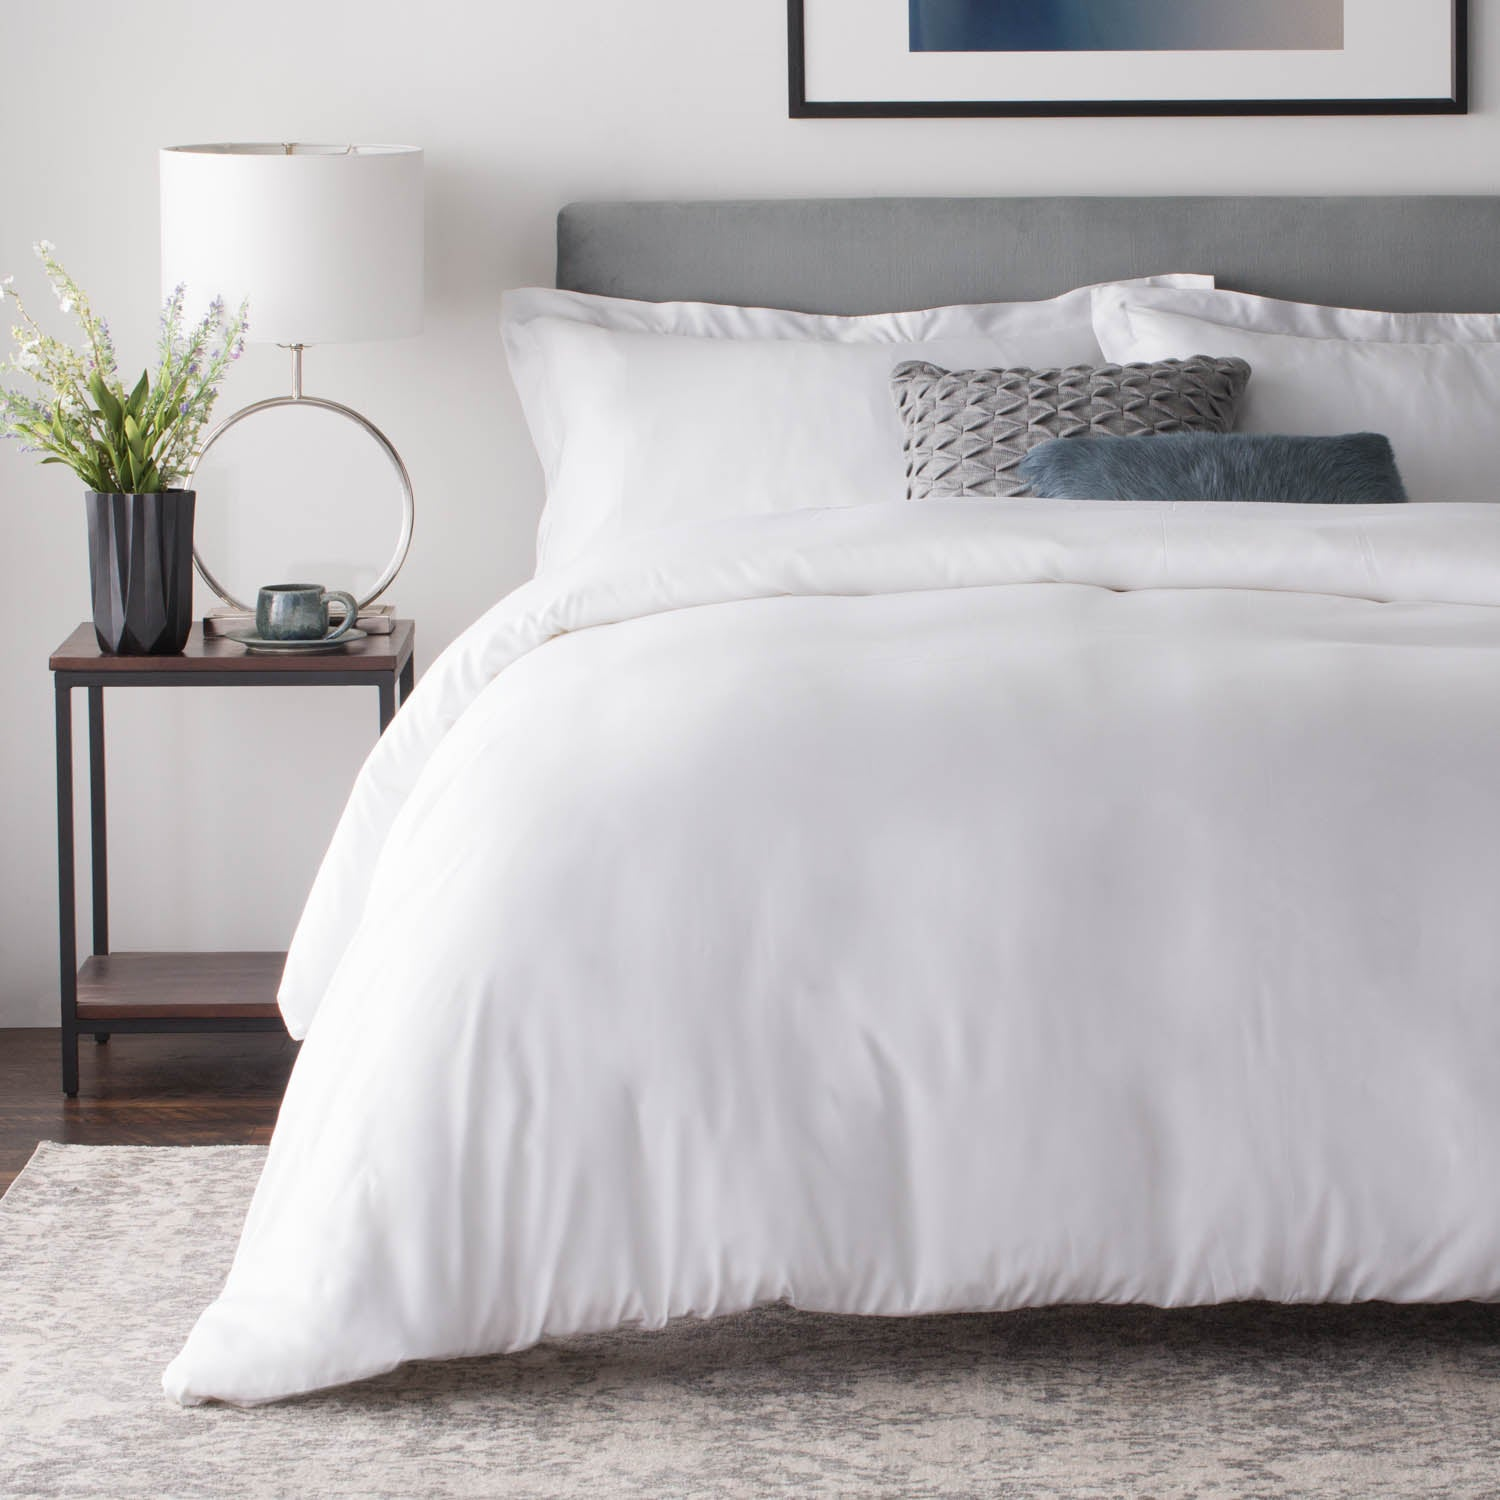 Malouf Woven Rayon From Bamboo Duvet Set